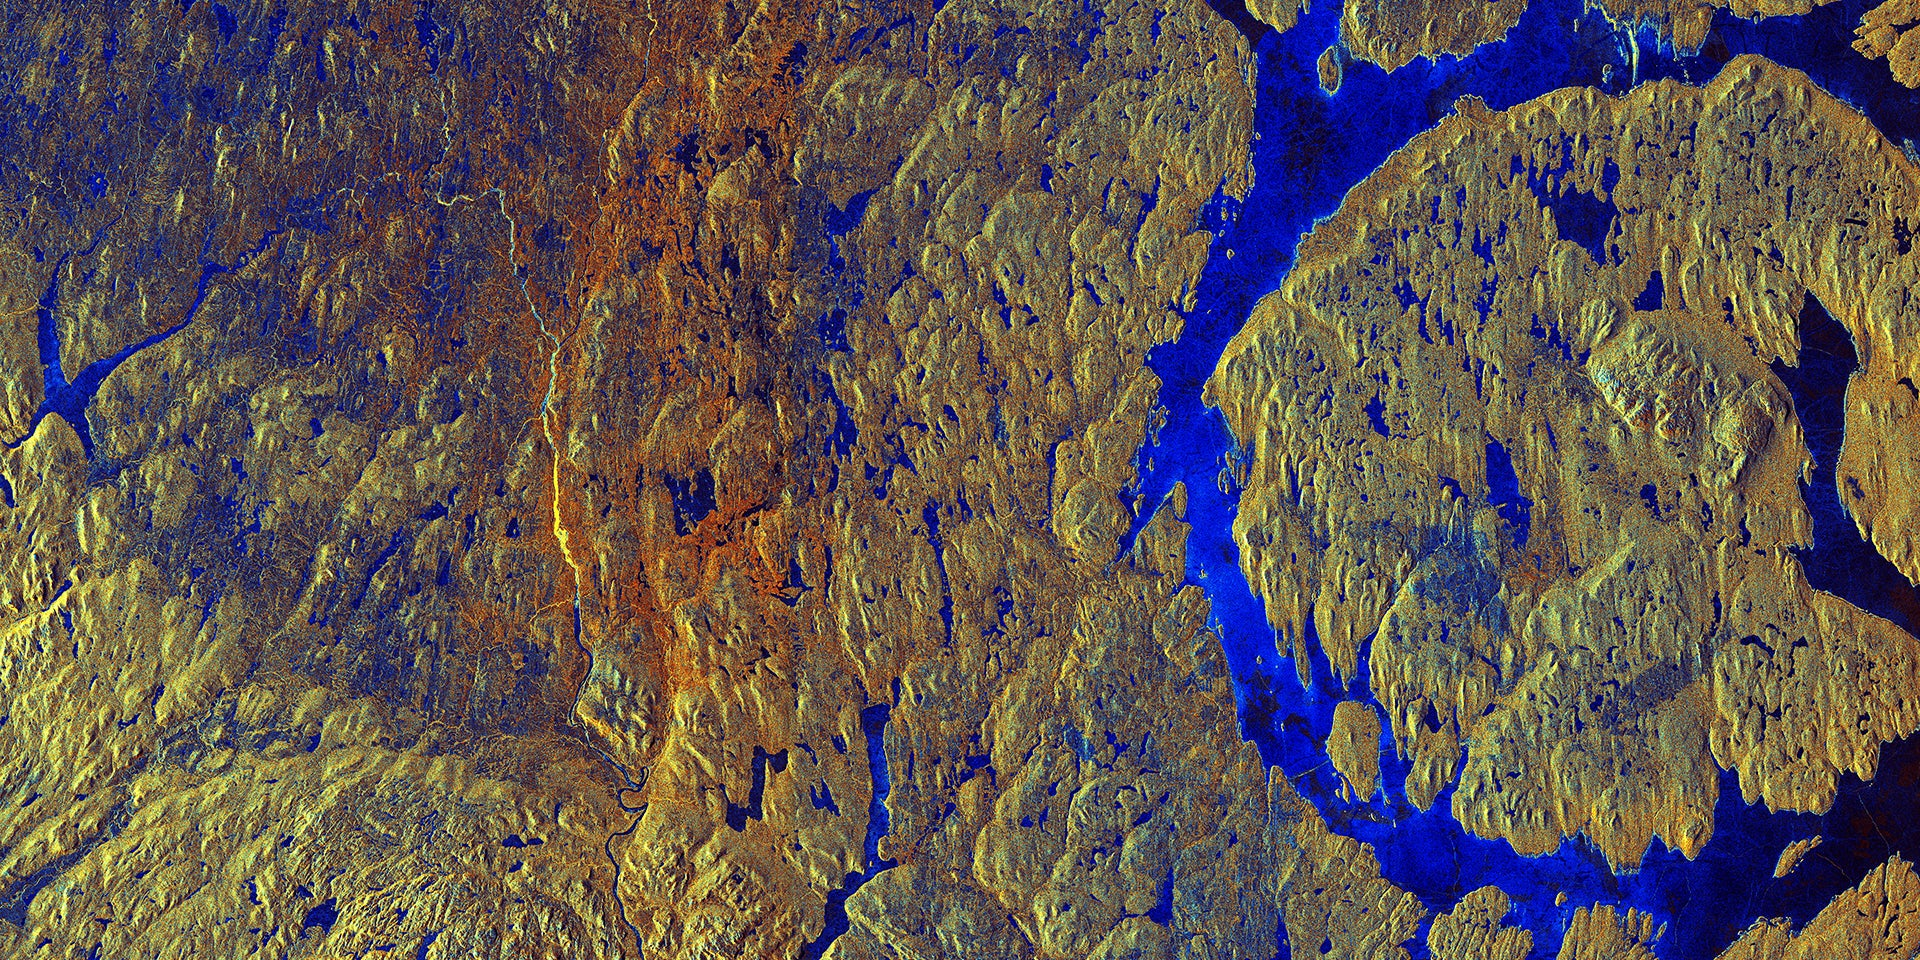 Canada's Manicouagan Crater Looks Other-Wordly in This Satellite Image